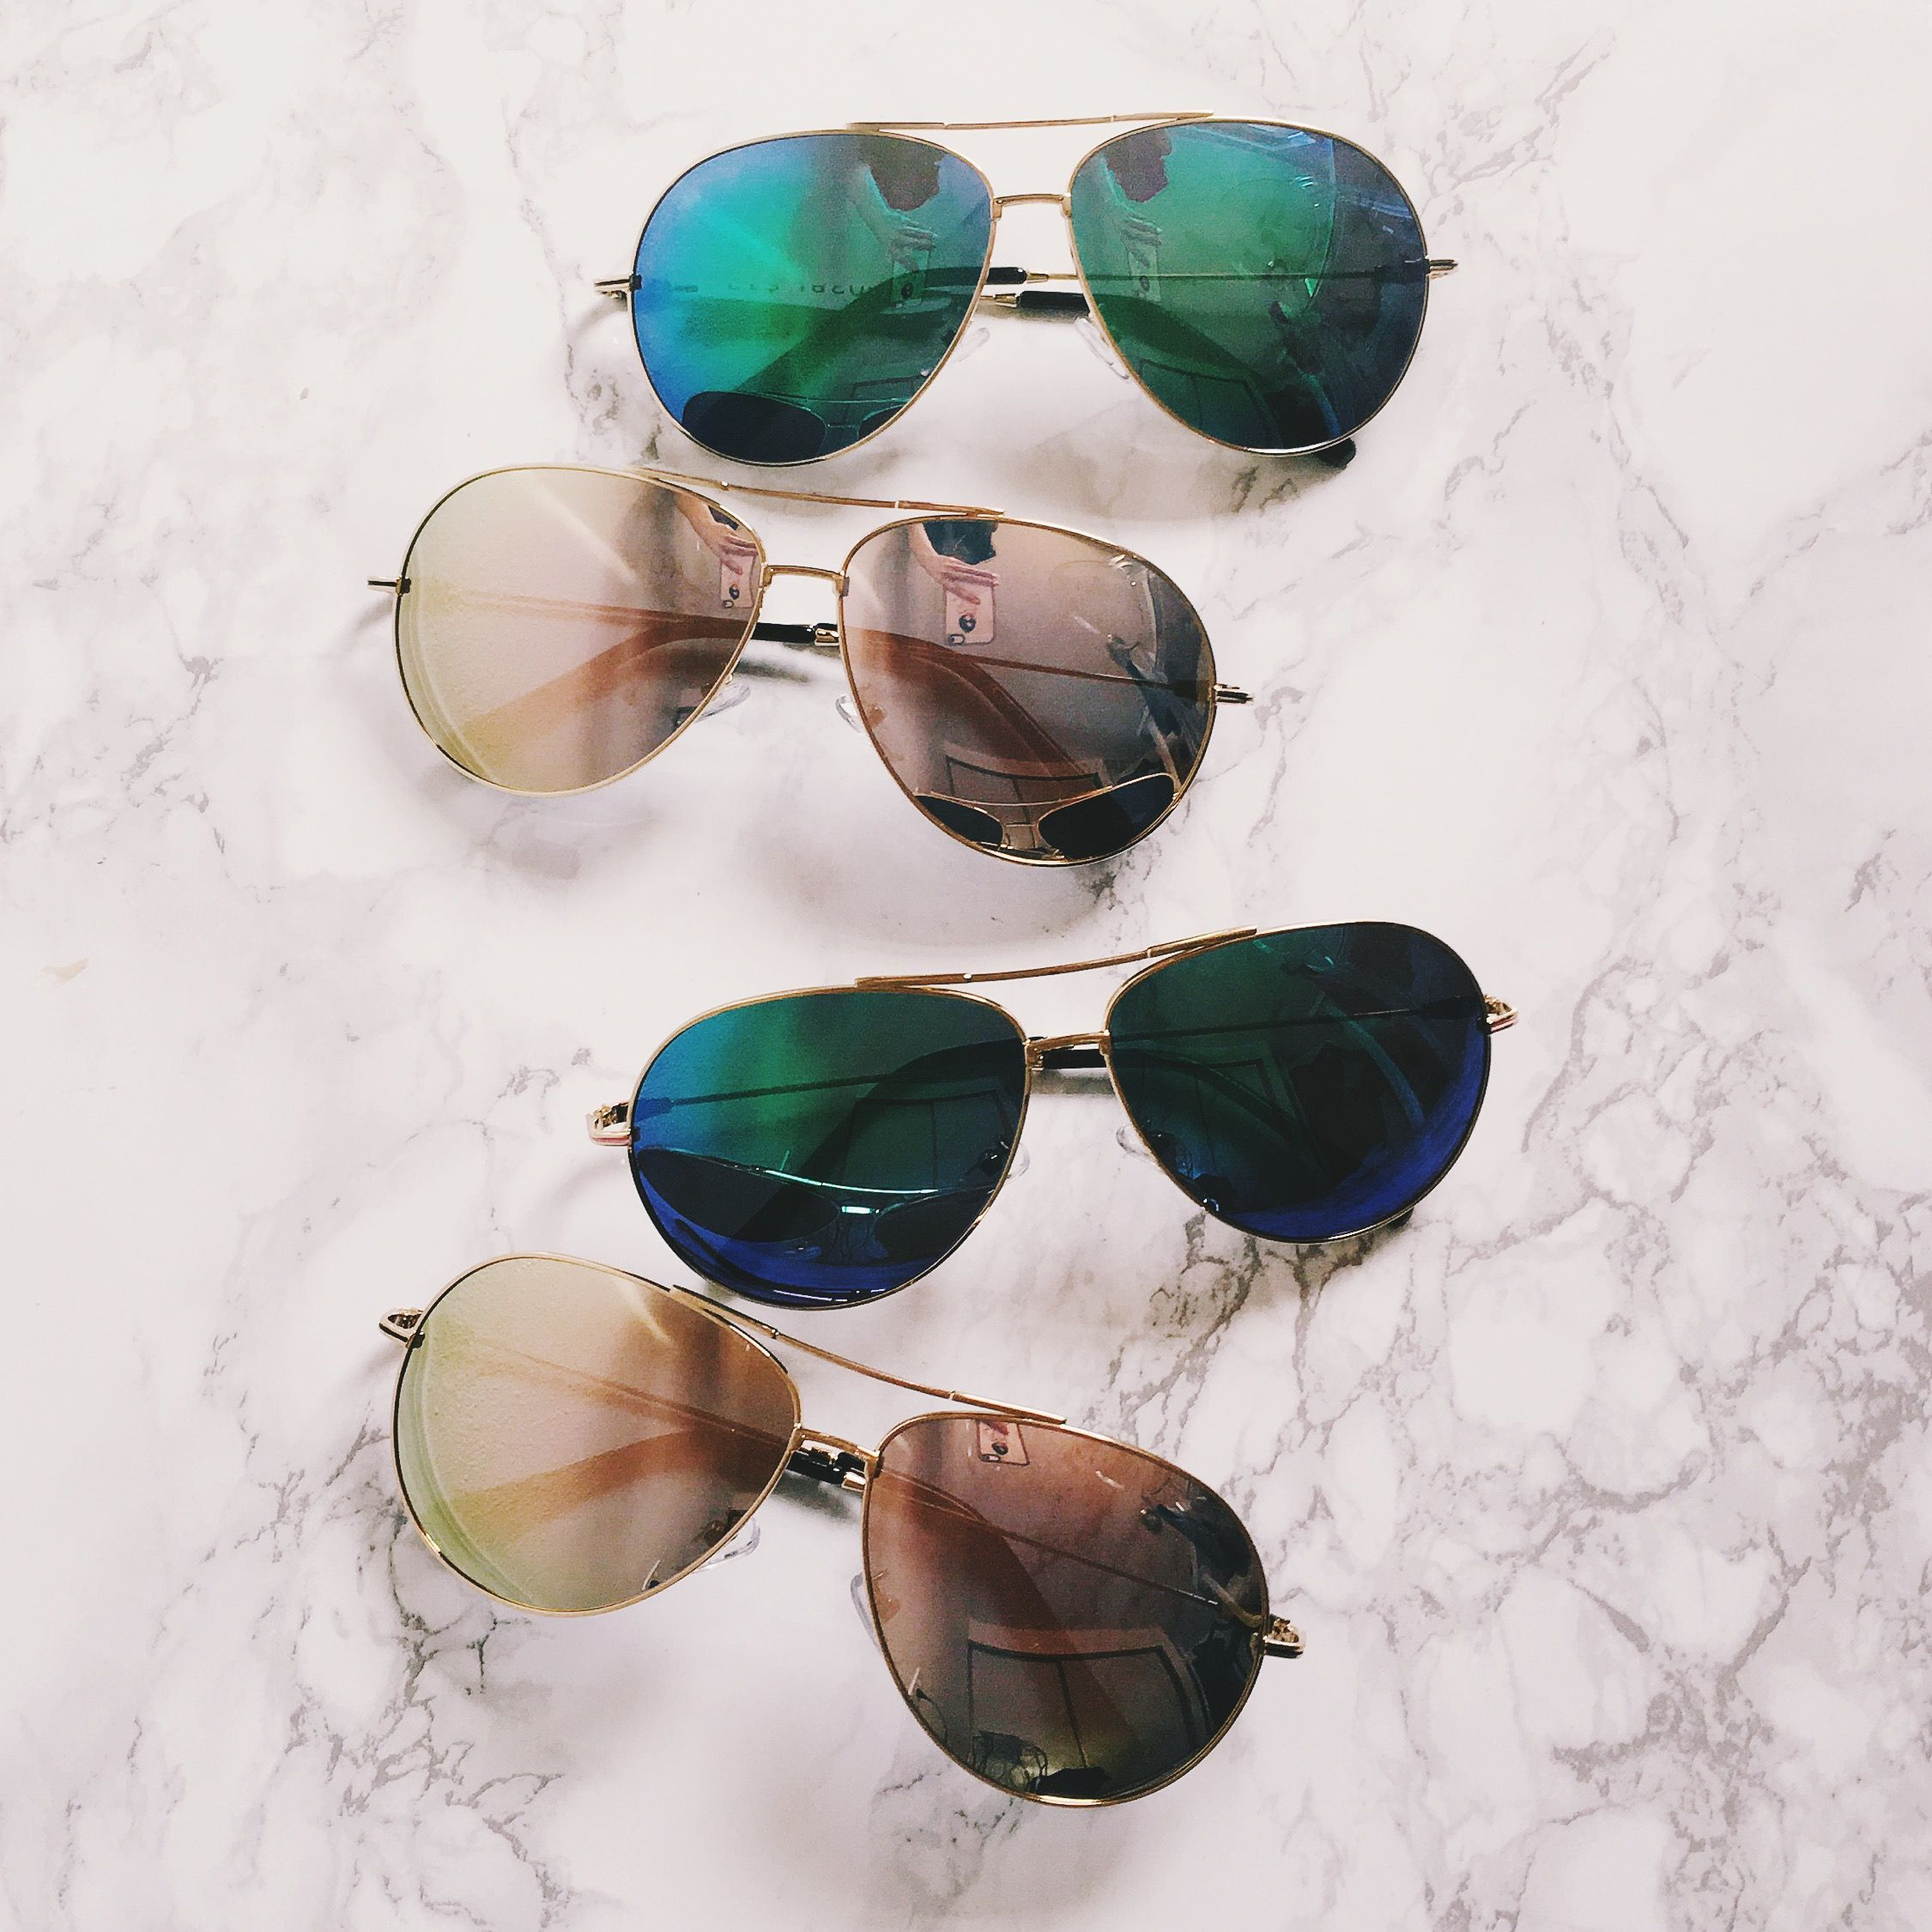 sunglasses, sunnies, cute sunnies, fashion, sunglass fashion, woman sunglasses, girl sunglasses